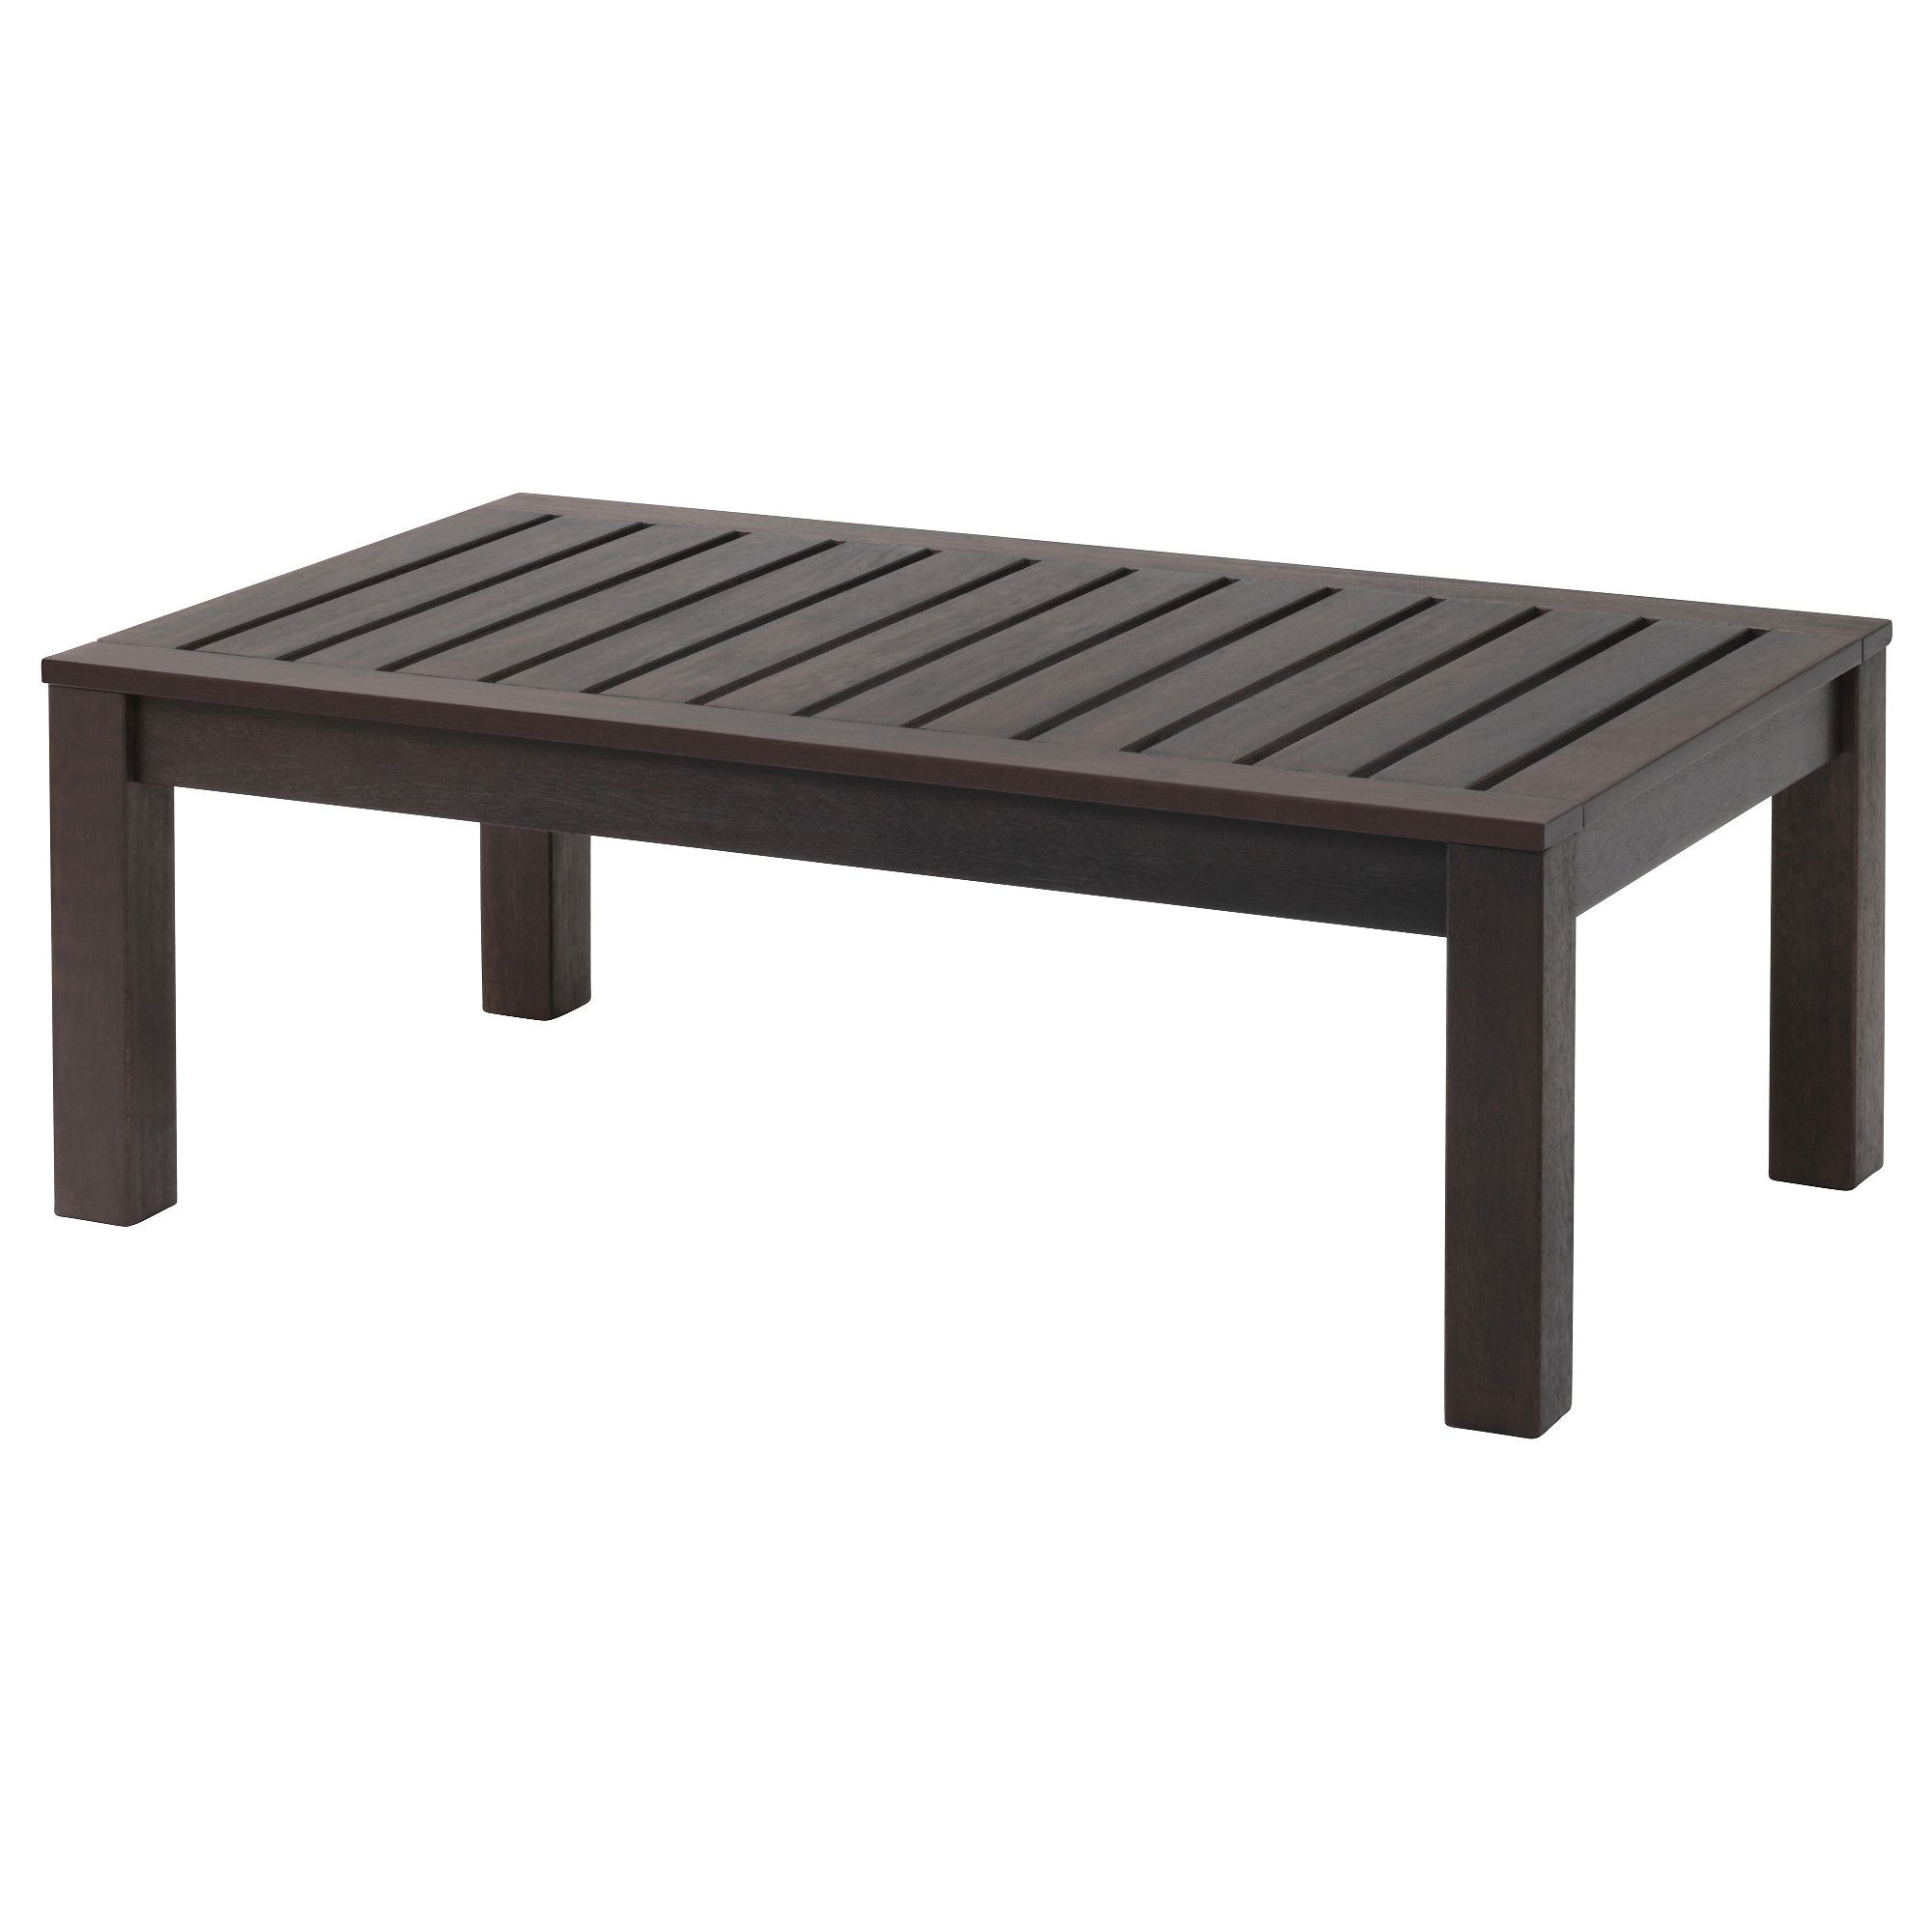 Kloven Coffee Table Outdoor Black Brown Brown Stained 44 1 2x26